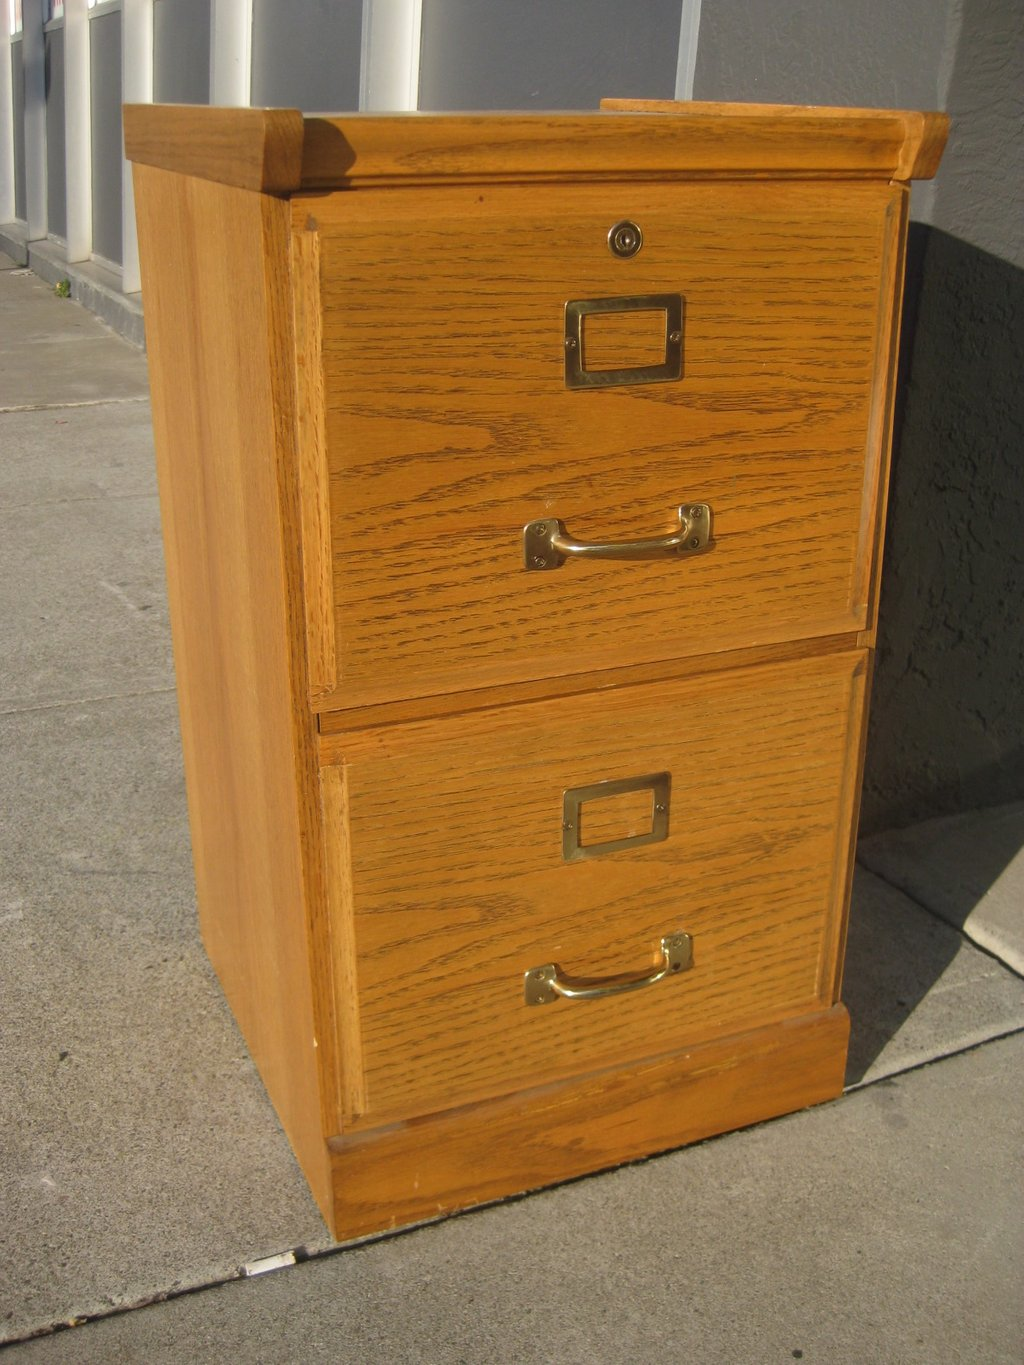 Locking Filing Cabinet Wood Roselawnlutheran Idea 2 2 2 Drawer Lateral File Cabinet Wood